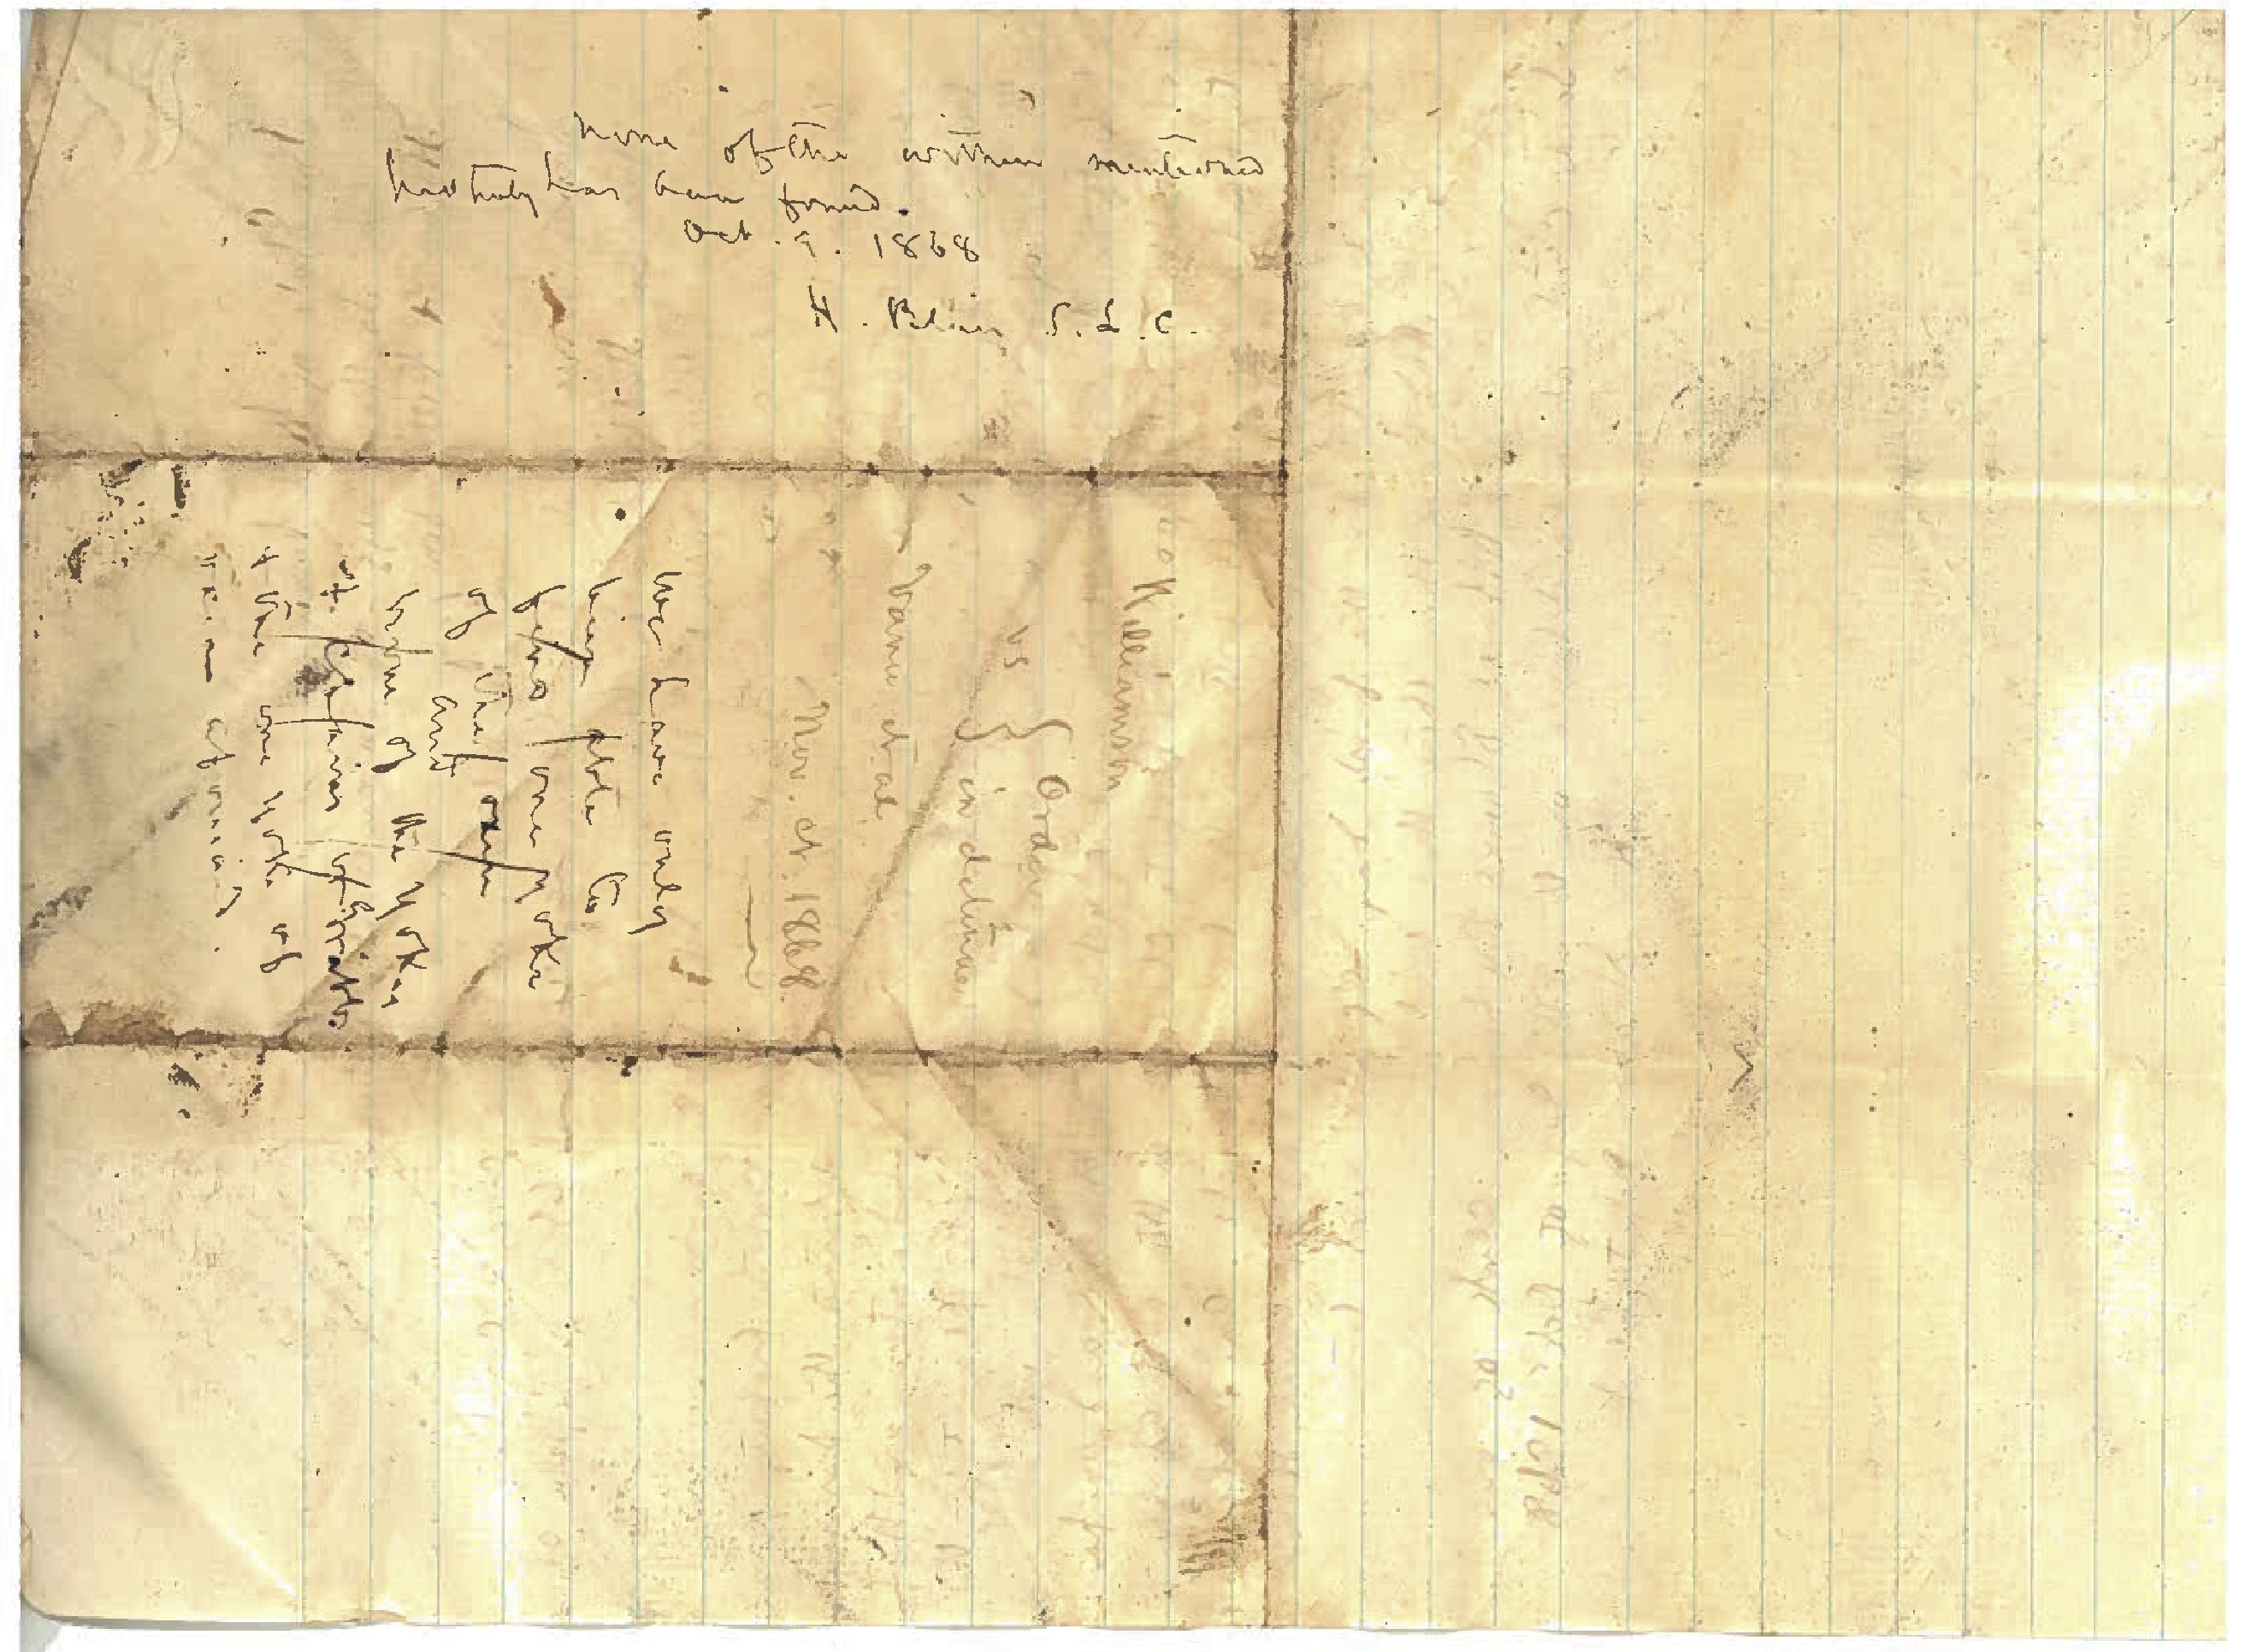 Anderson Hatfield and James Vance Document 1868 7